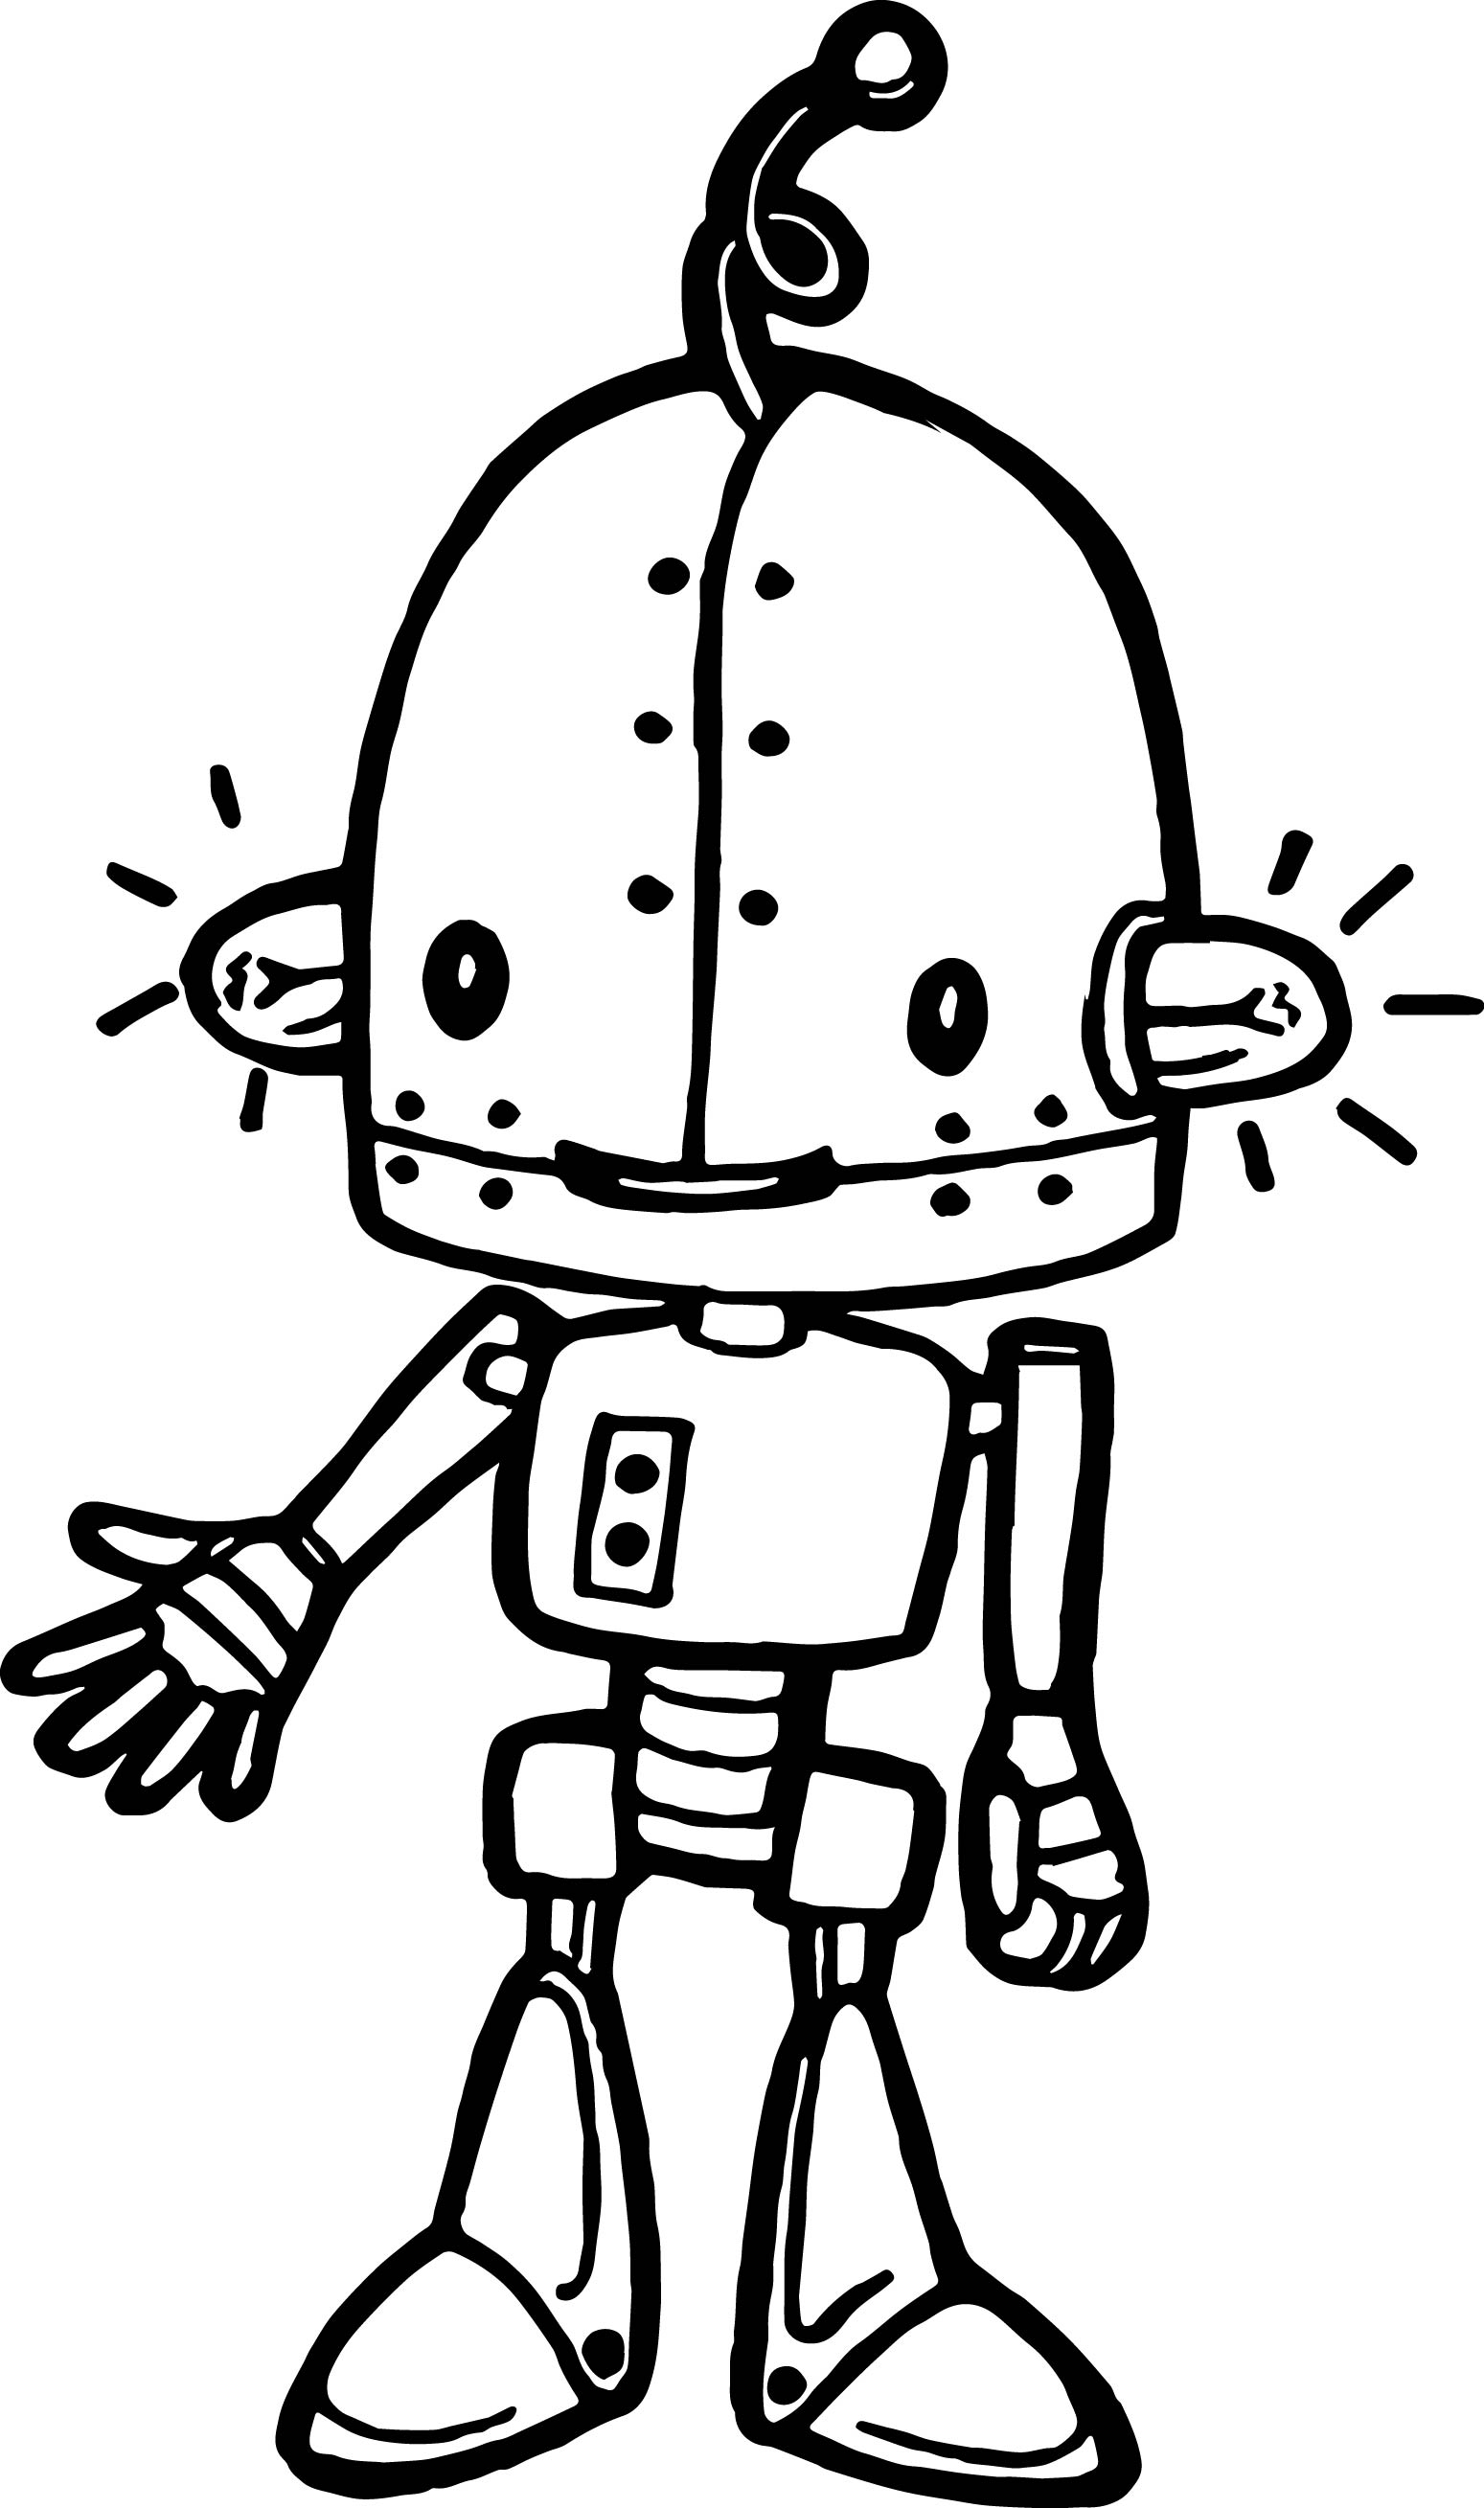 Ampule Cartoon Robot Coloring Page